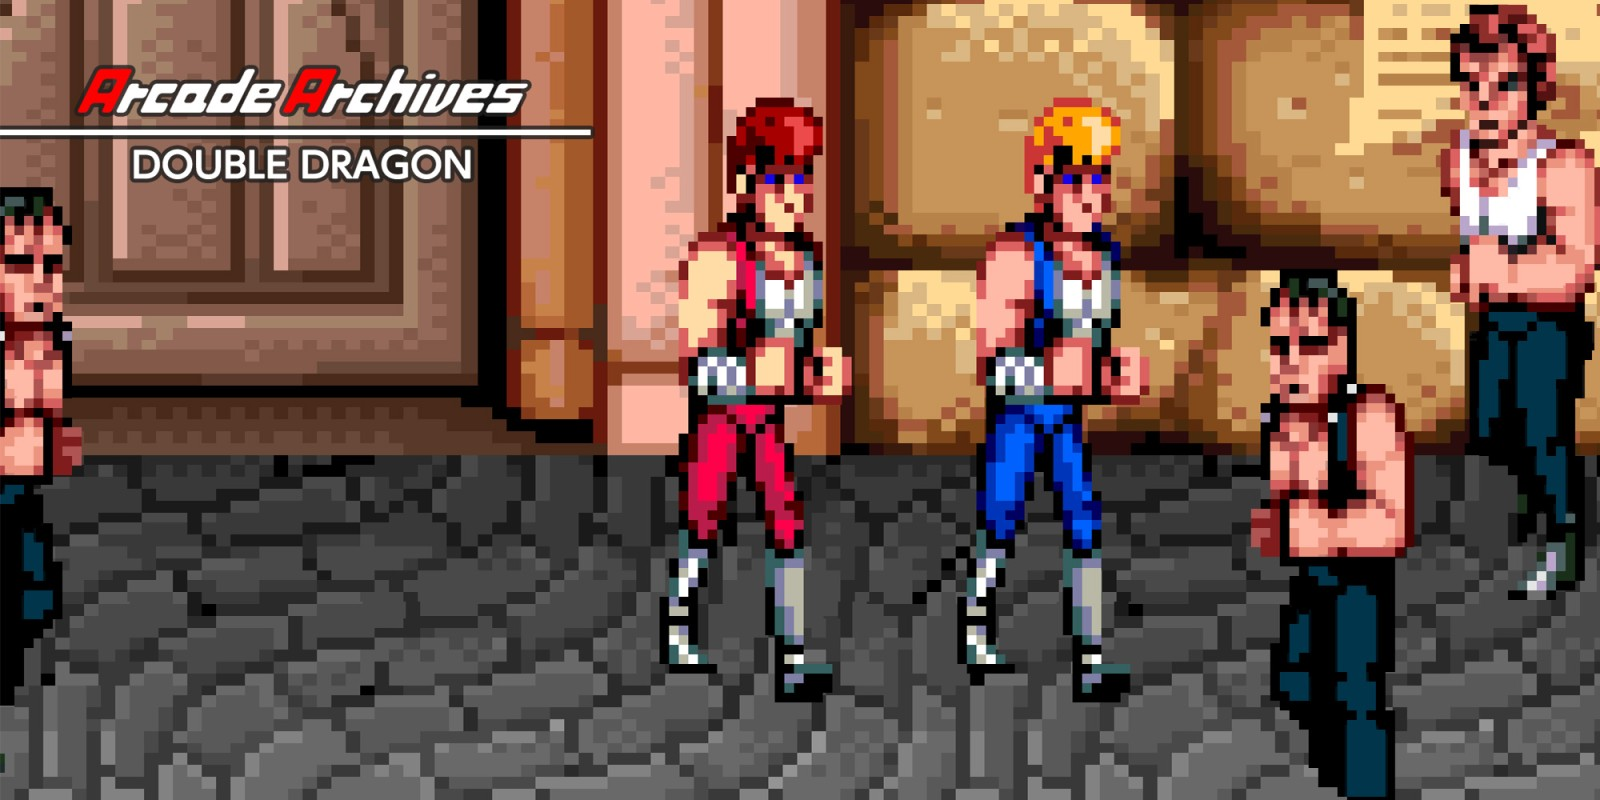 Arcade Archives DOUBLE DRAGON  Nintendo Switch download